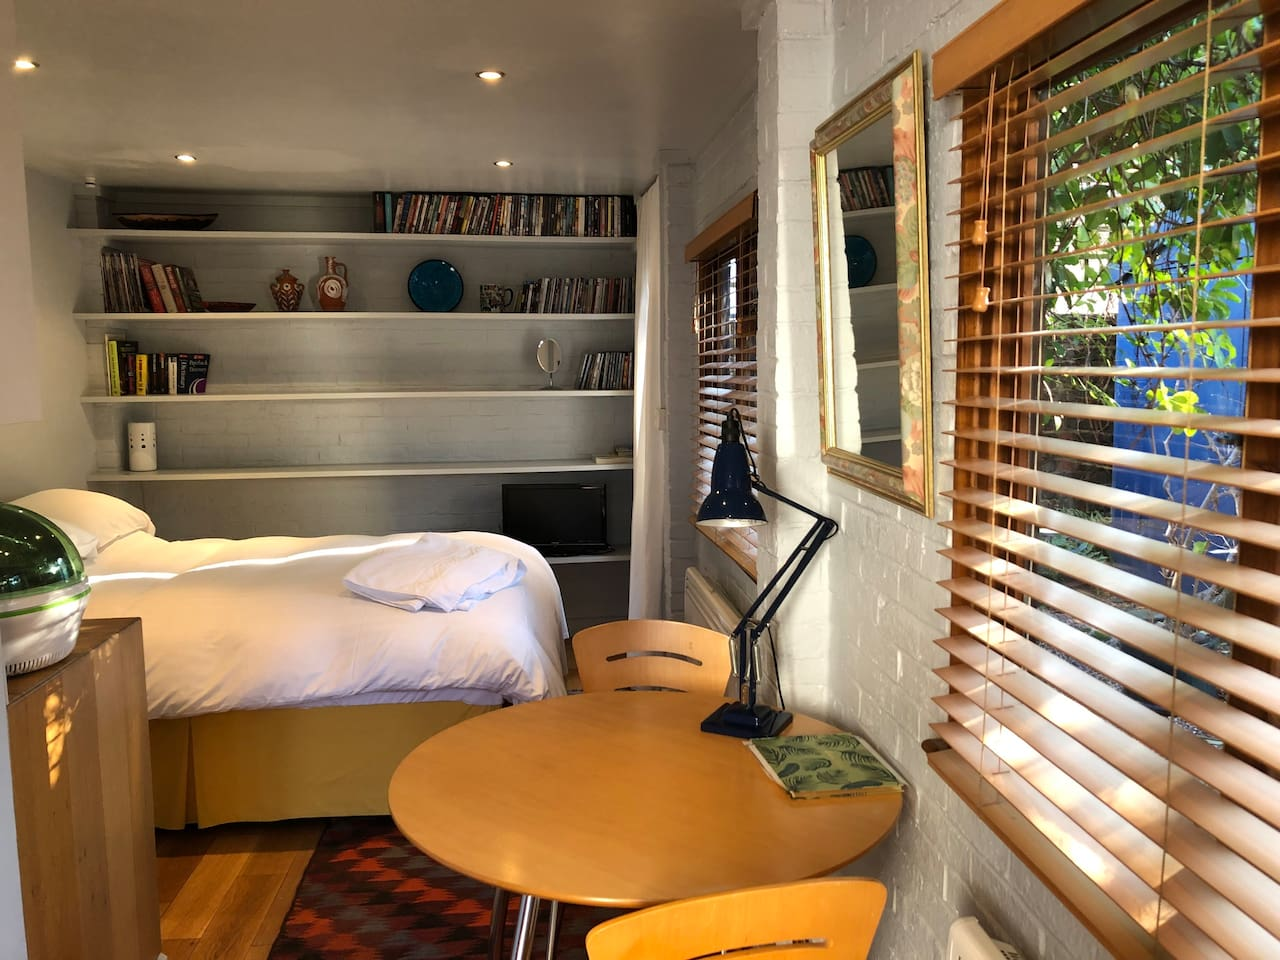 Stylish room in a perfect location just off Chiswick High Road